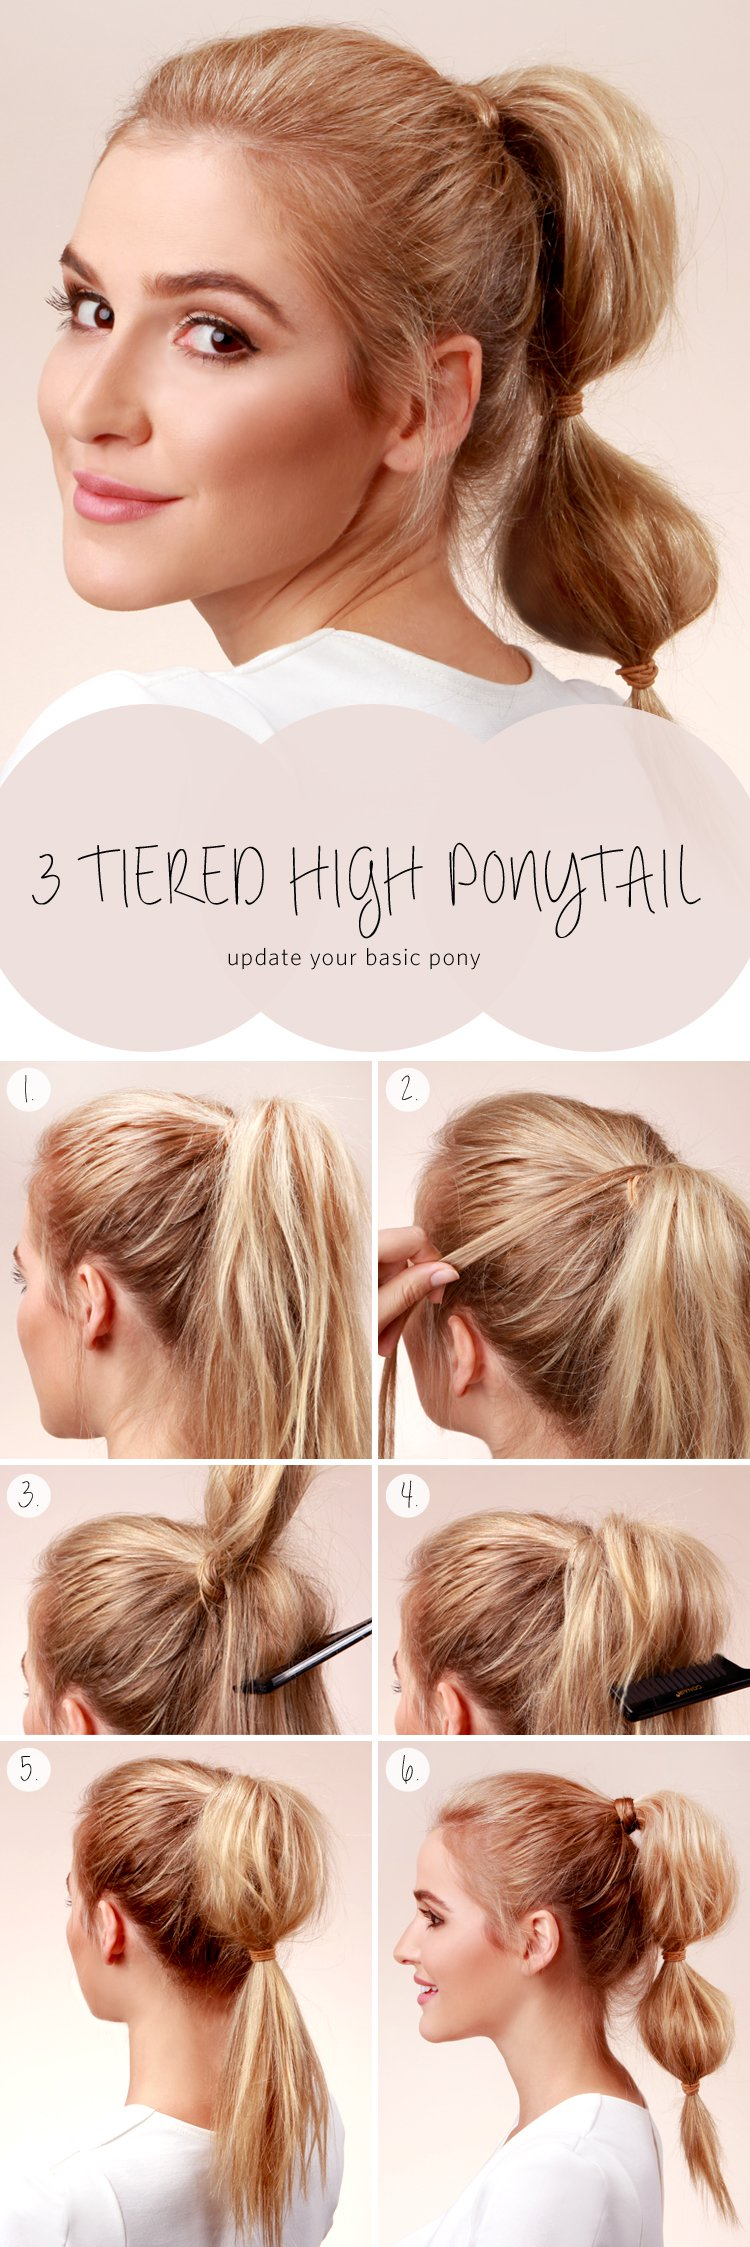 3-tier high ponytail